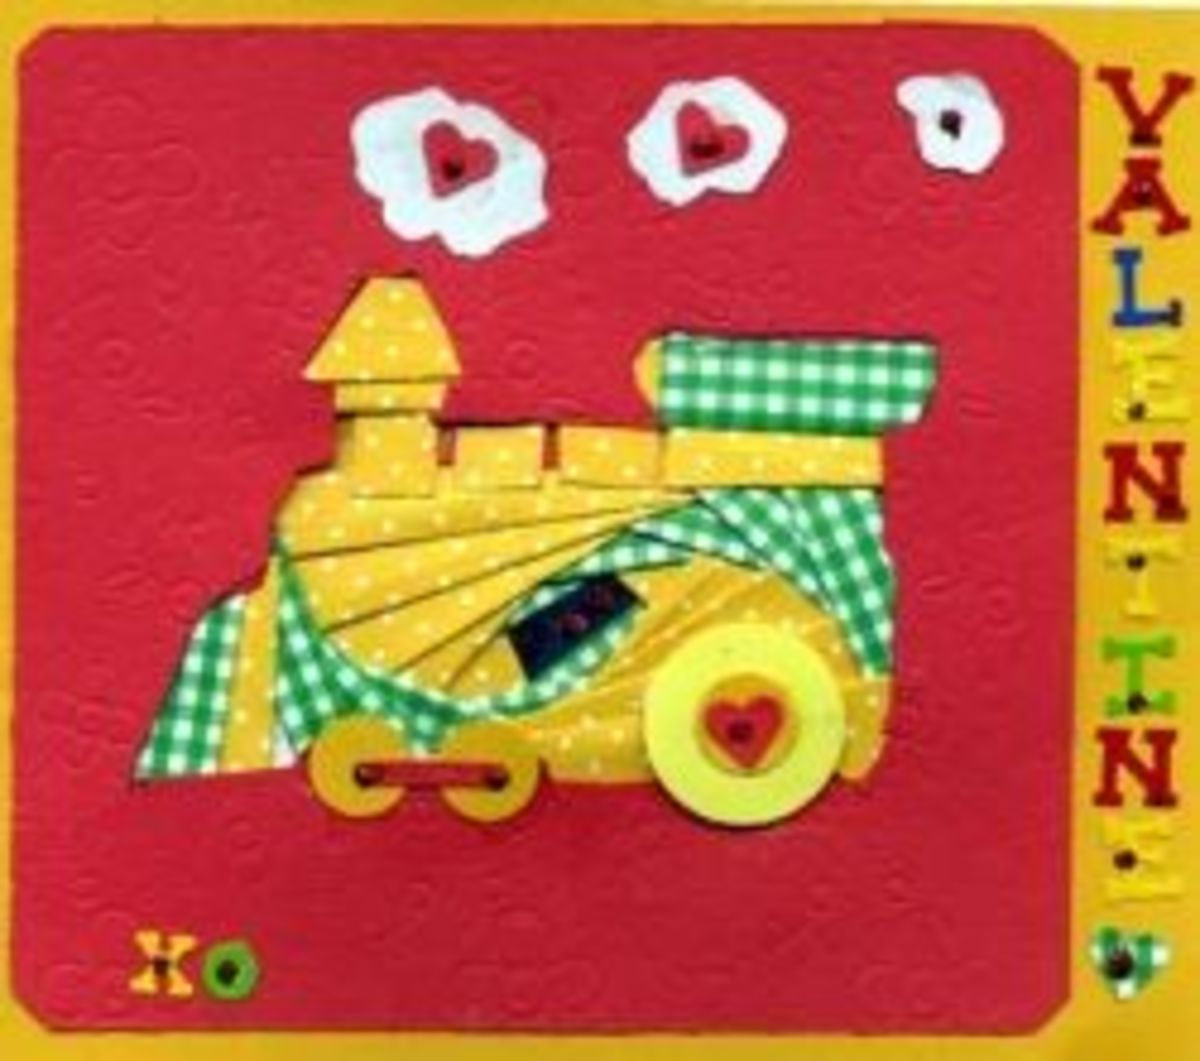 Child's Card with Iris Folded Train